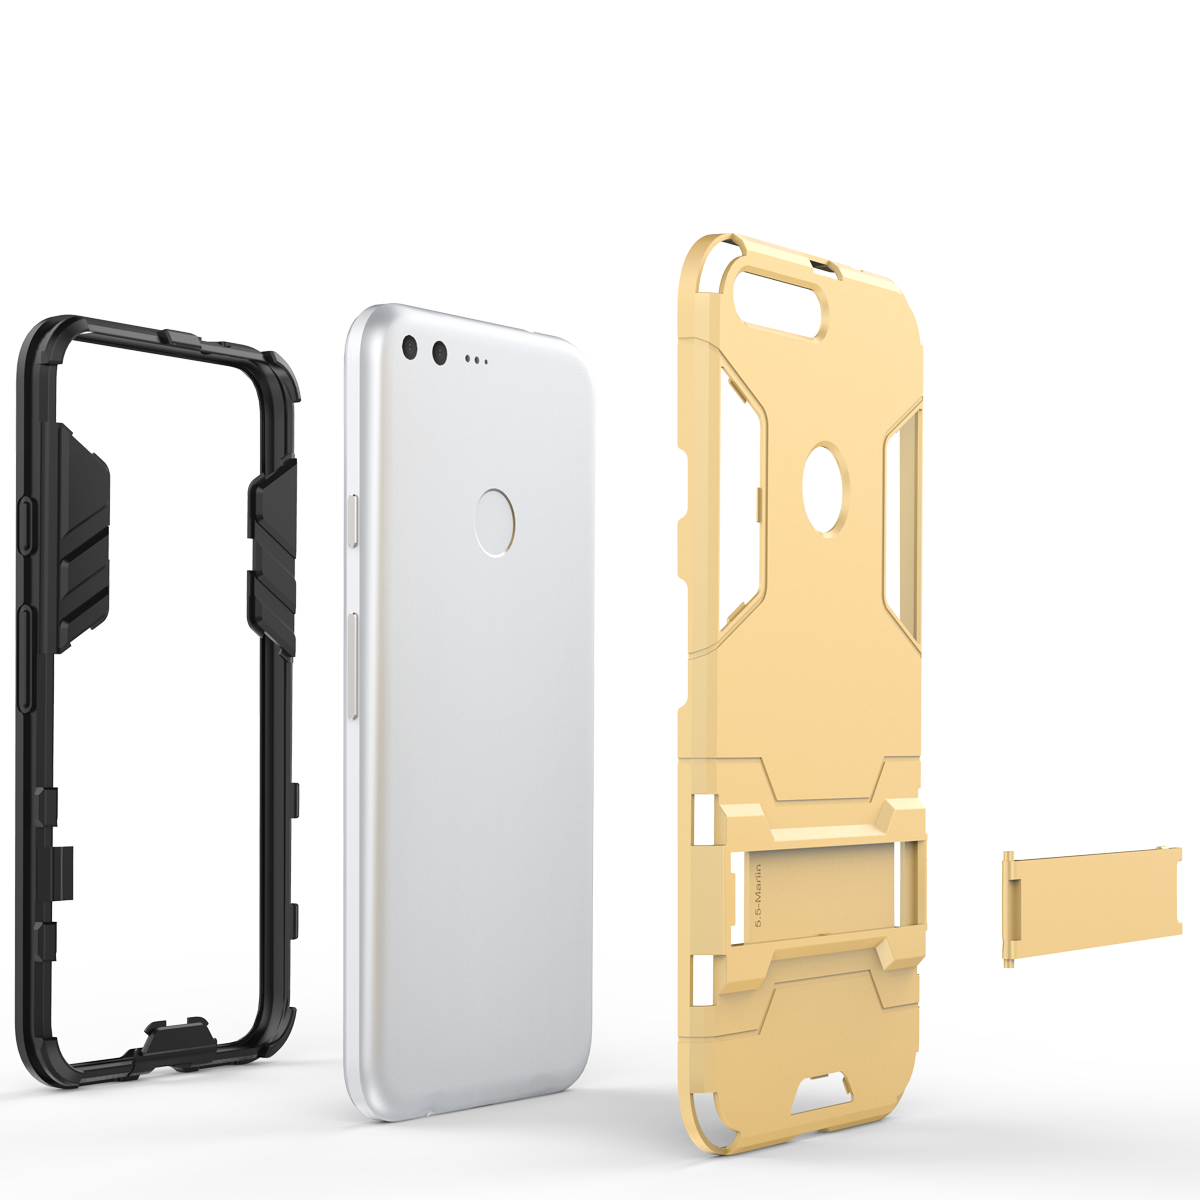 Kickstand Tough Dual Layer Protective Case For Google Pixel 5.0inch - Gold